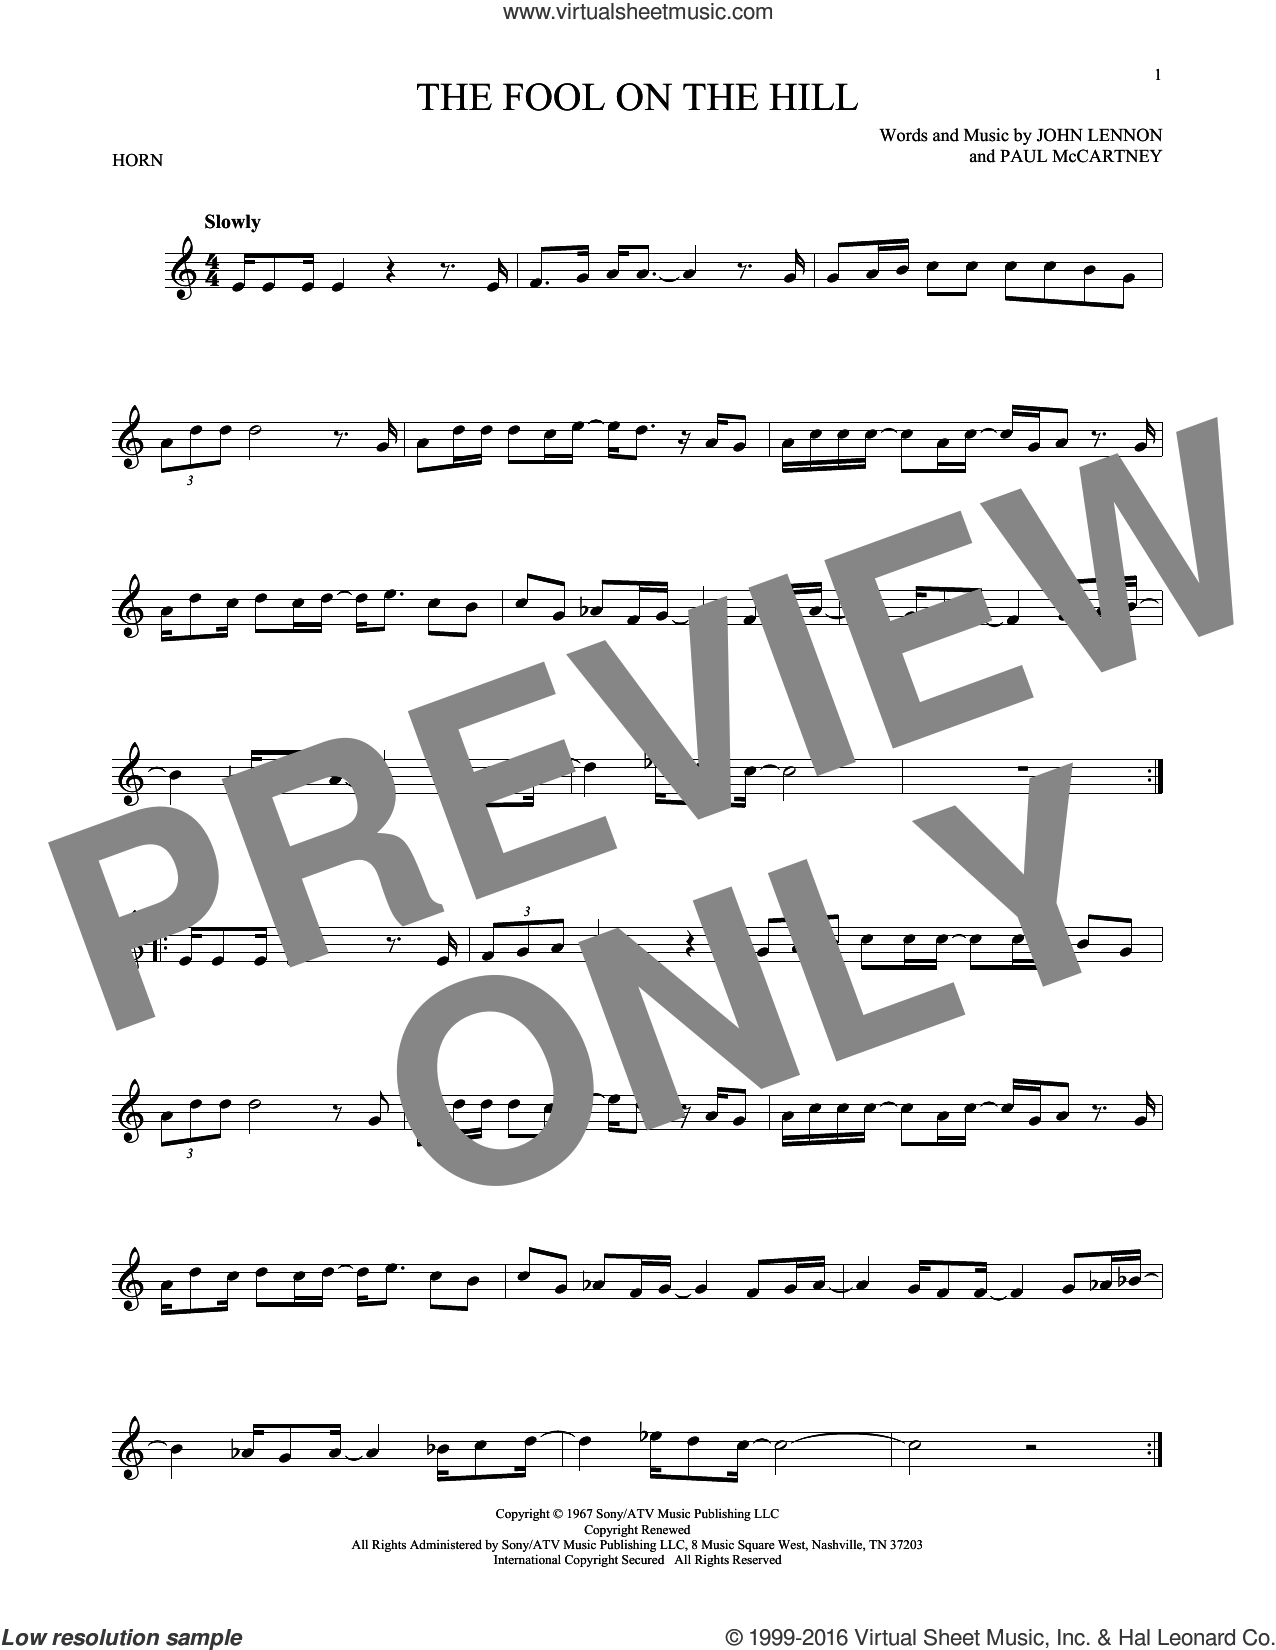 The Fool On The Hill sheet music for horn solo by The Beatles, John Lennon and Paul McCartney, intermediate skill level